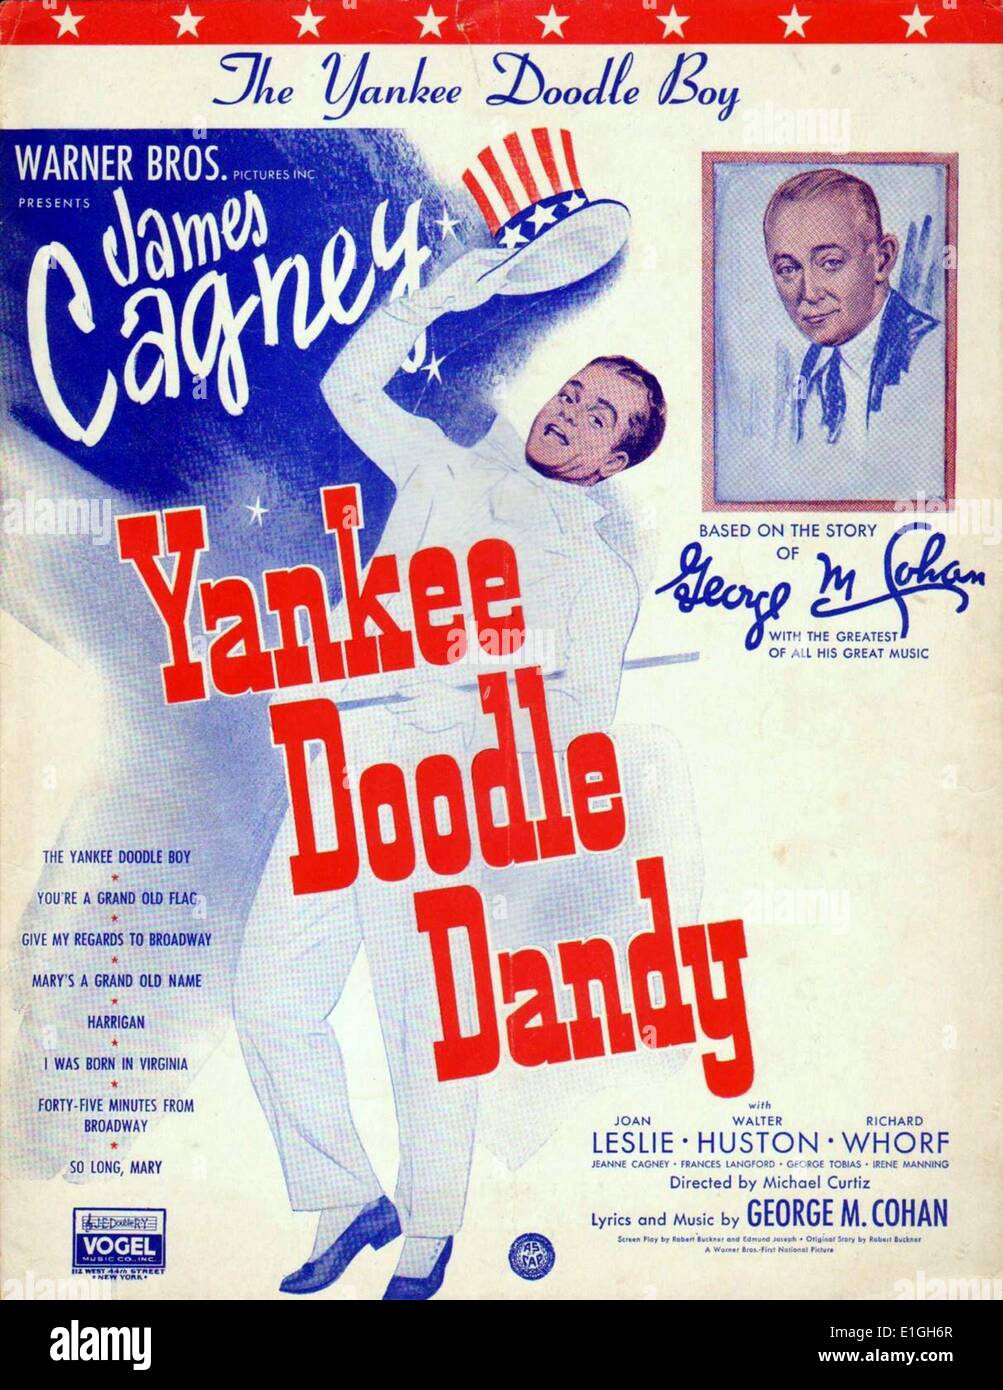 Yankee Doodle Dandy une 1942 American Biographical film musical de George M. Cohan, connu comme 'l'homme qui possédait Broadway'. Il Photo Stock